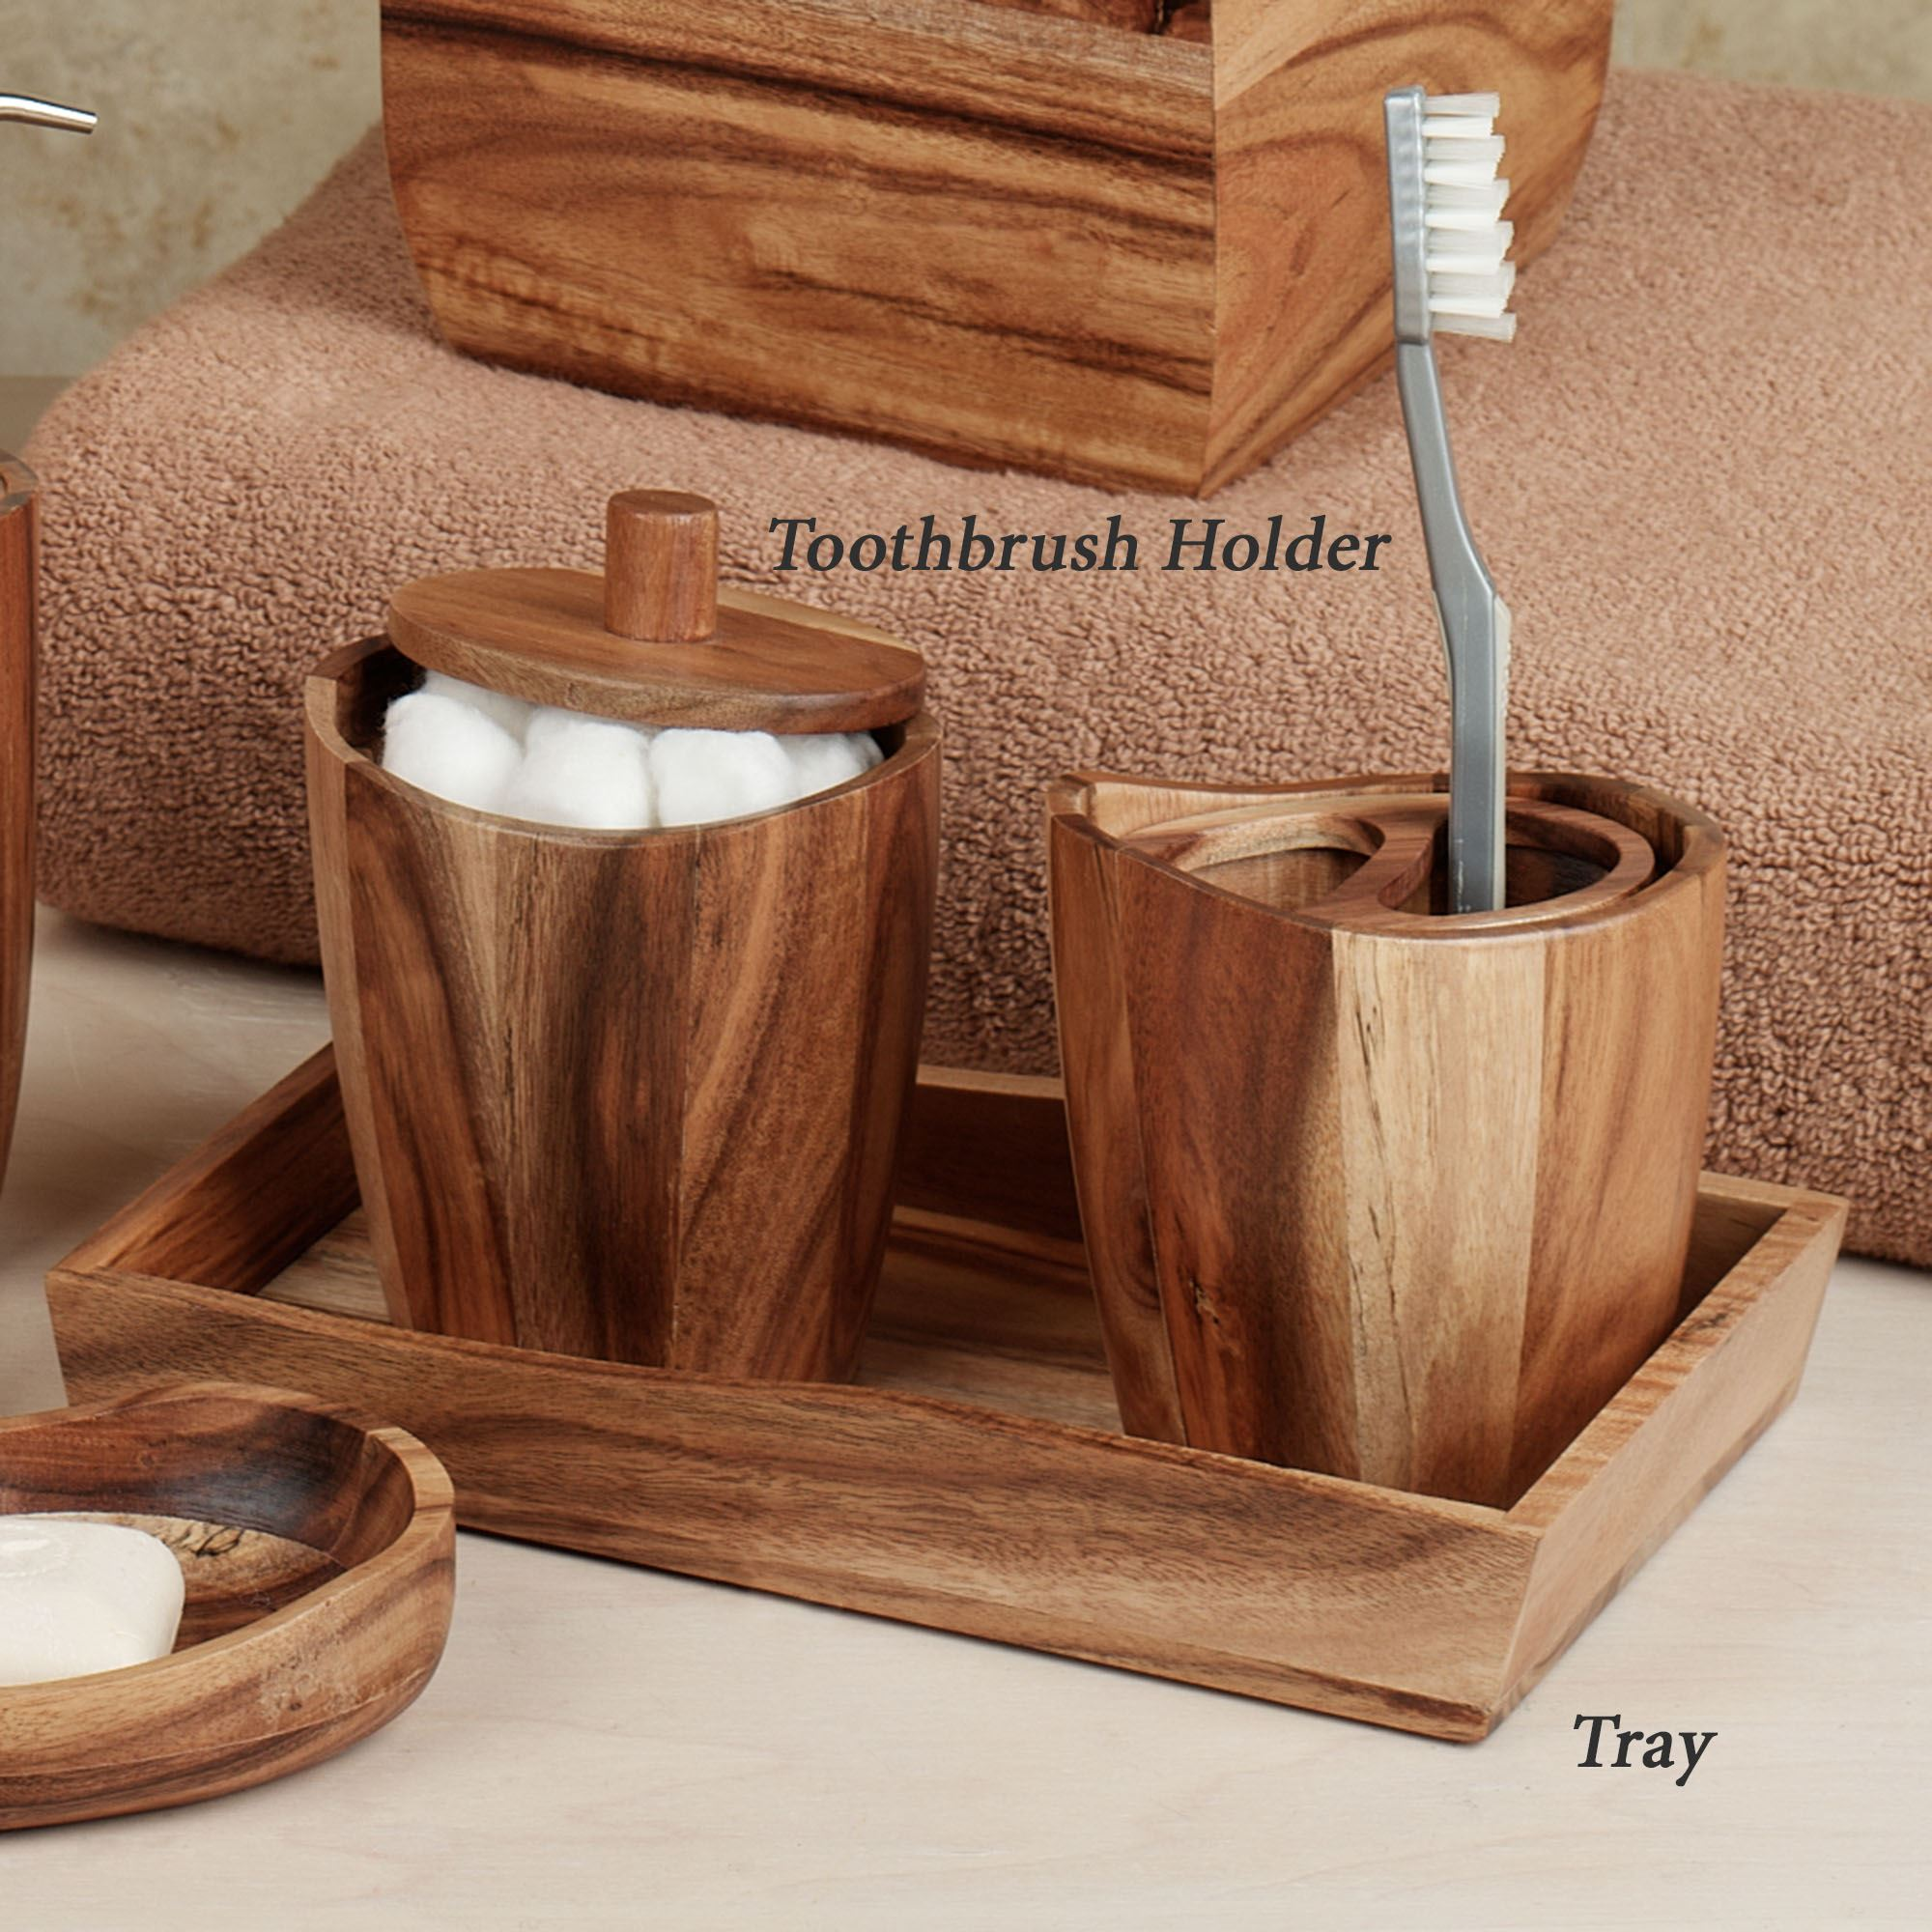 click to expand - Wooden Bathroom Accessories Uk